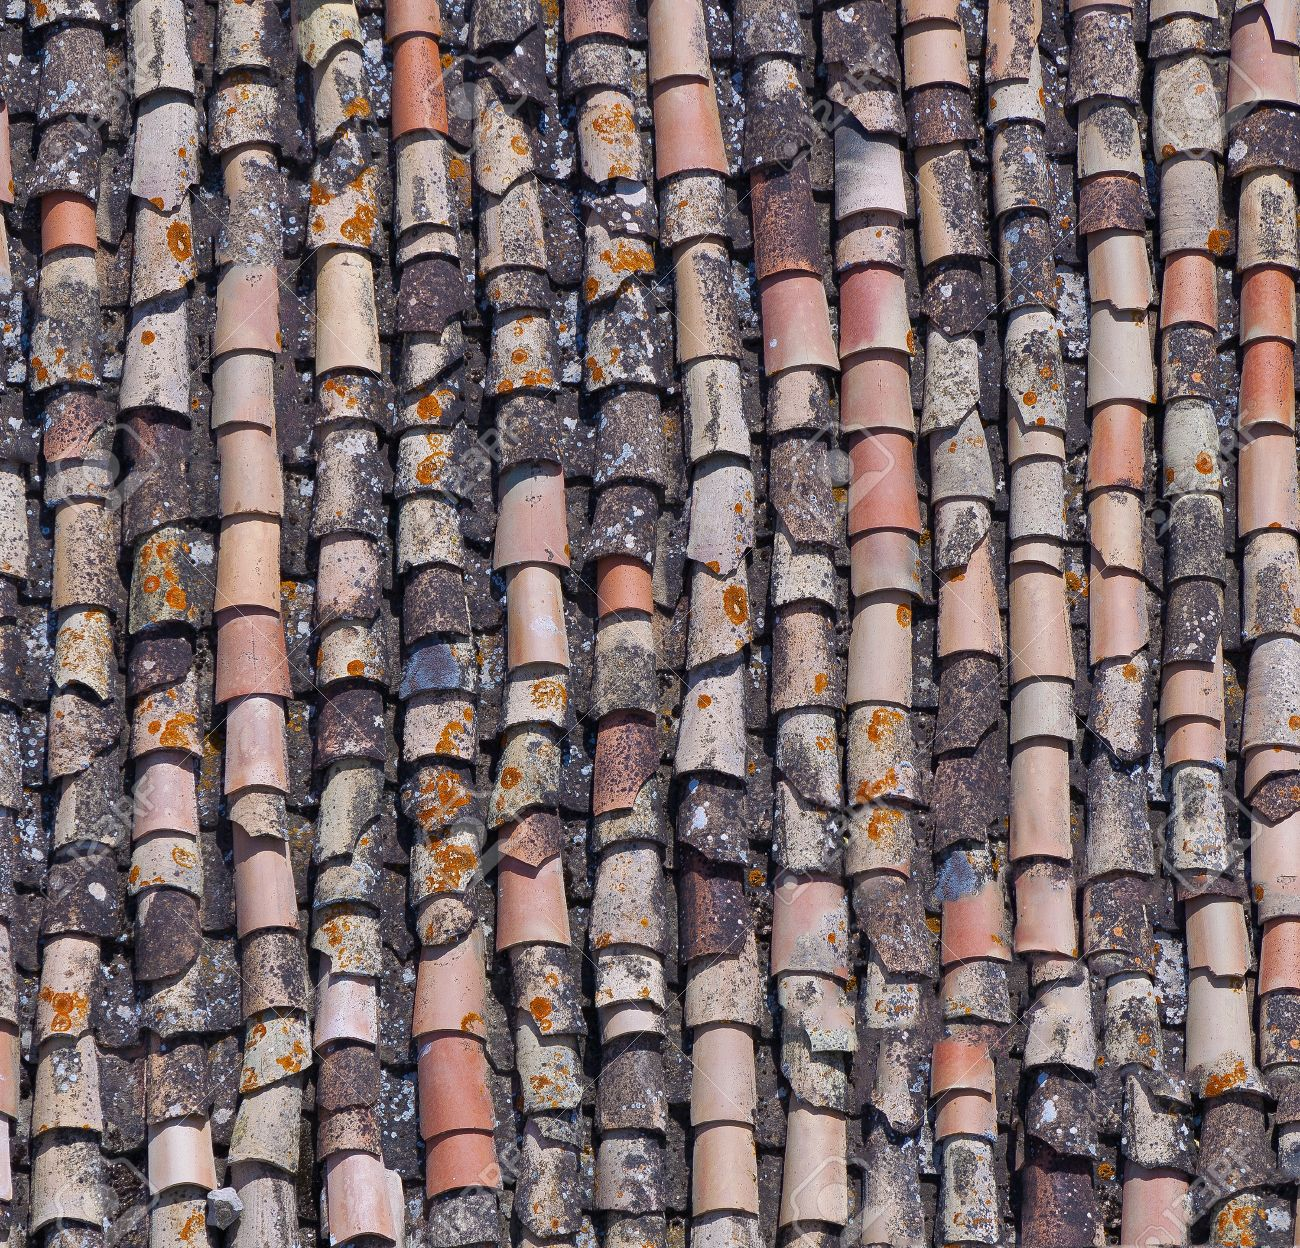 Old Roofs Roof Stones Stock Photos & Picturesroyalty Free Roof Stones